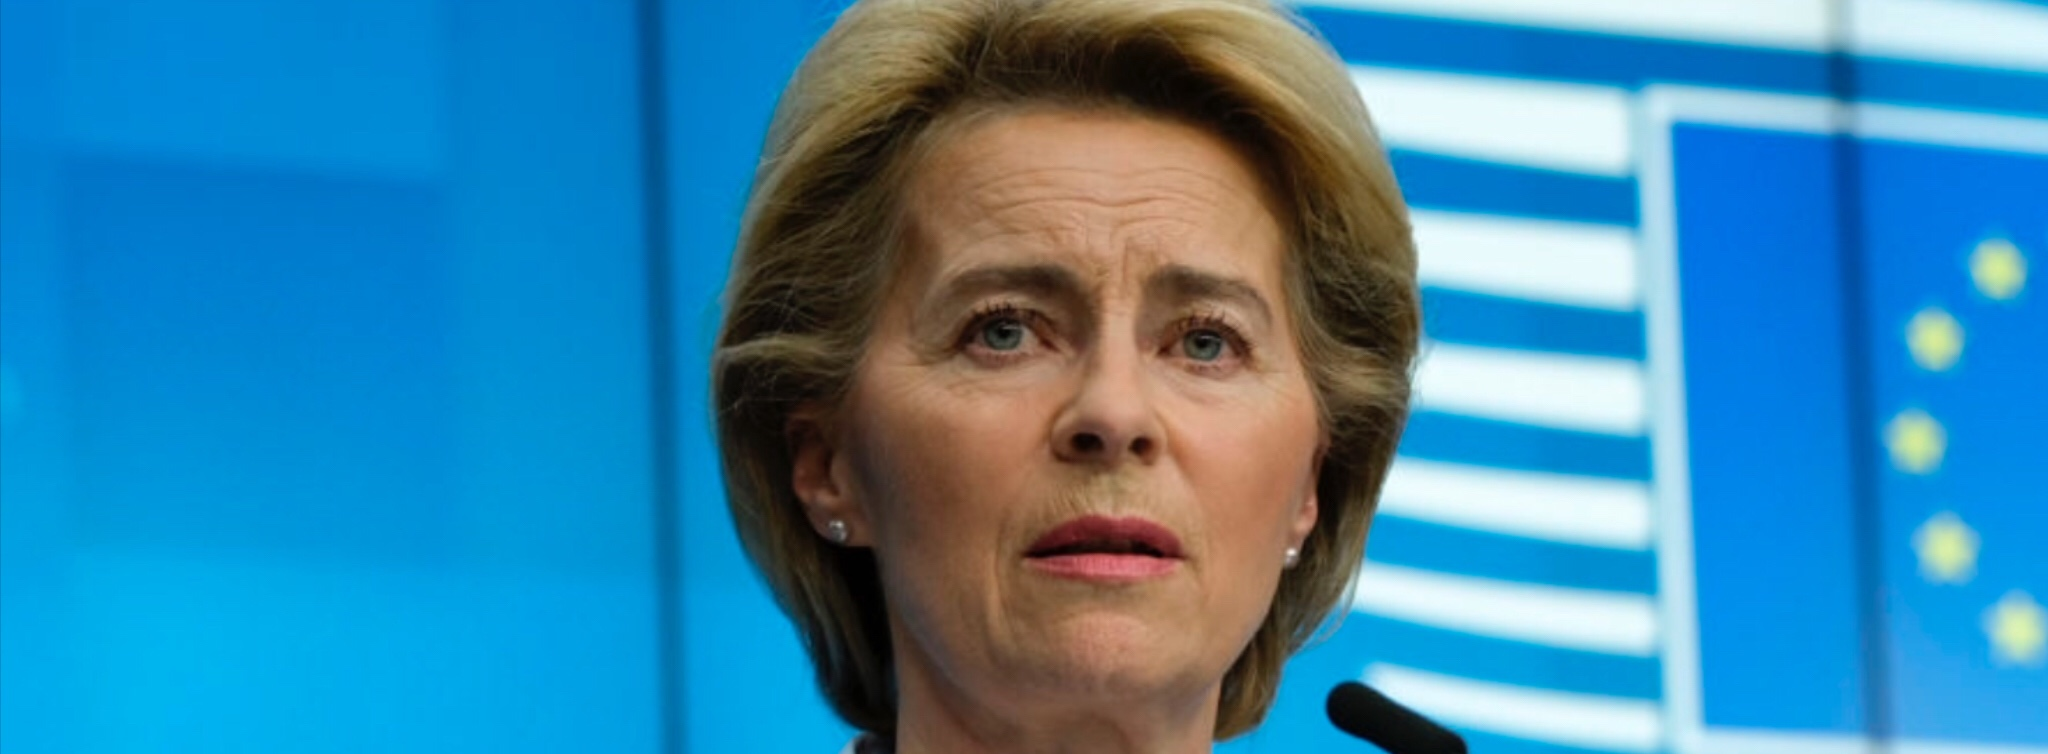 Belarus: Leyen calls for «additional sanctions»